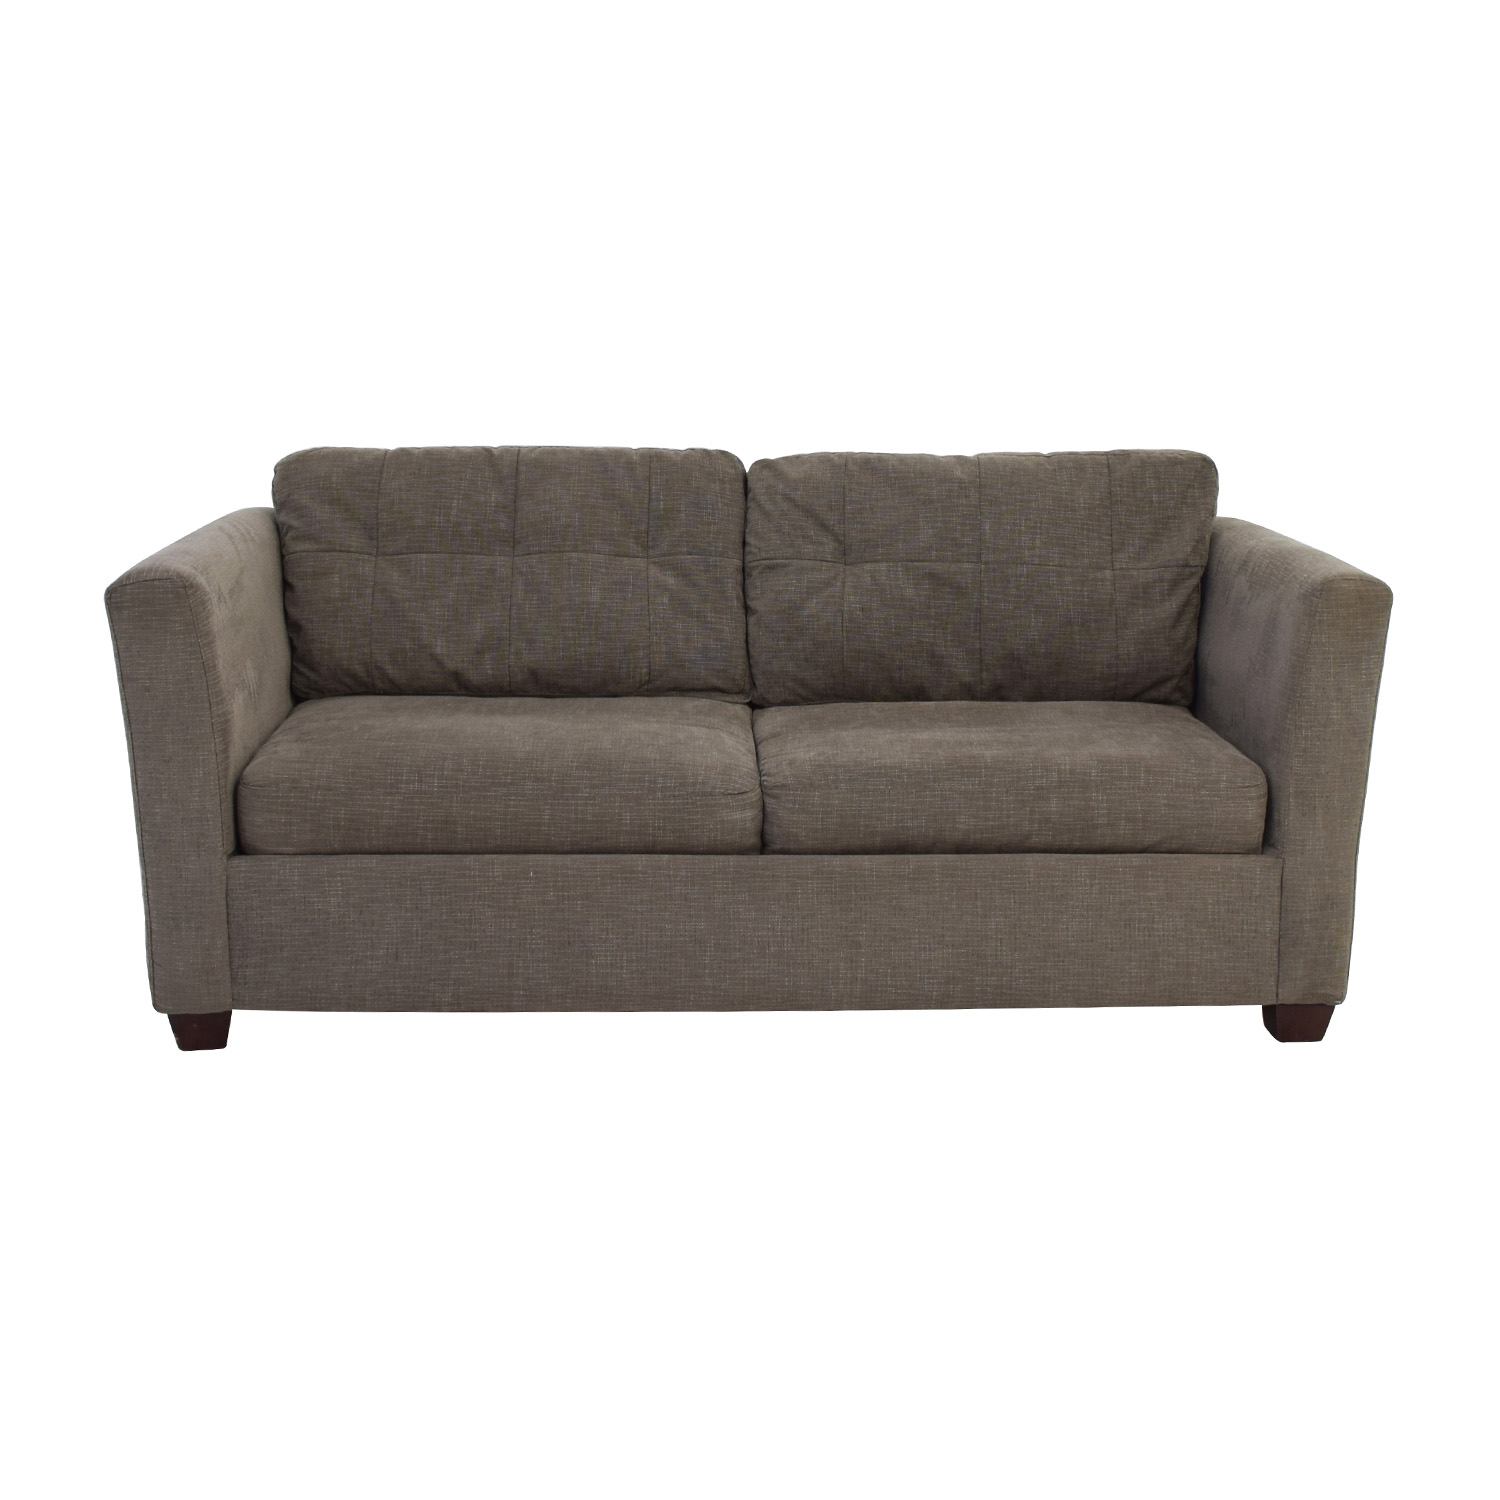 58 off bauhaus bauhaus grey queen sleeper sofa sofas for Bauhaus sofa bed